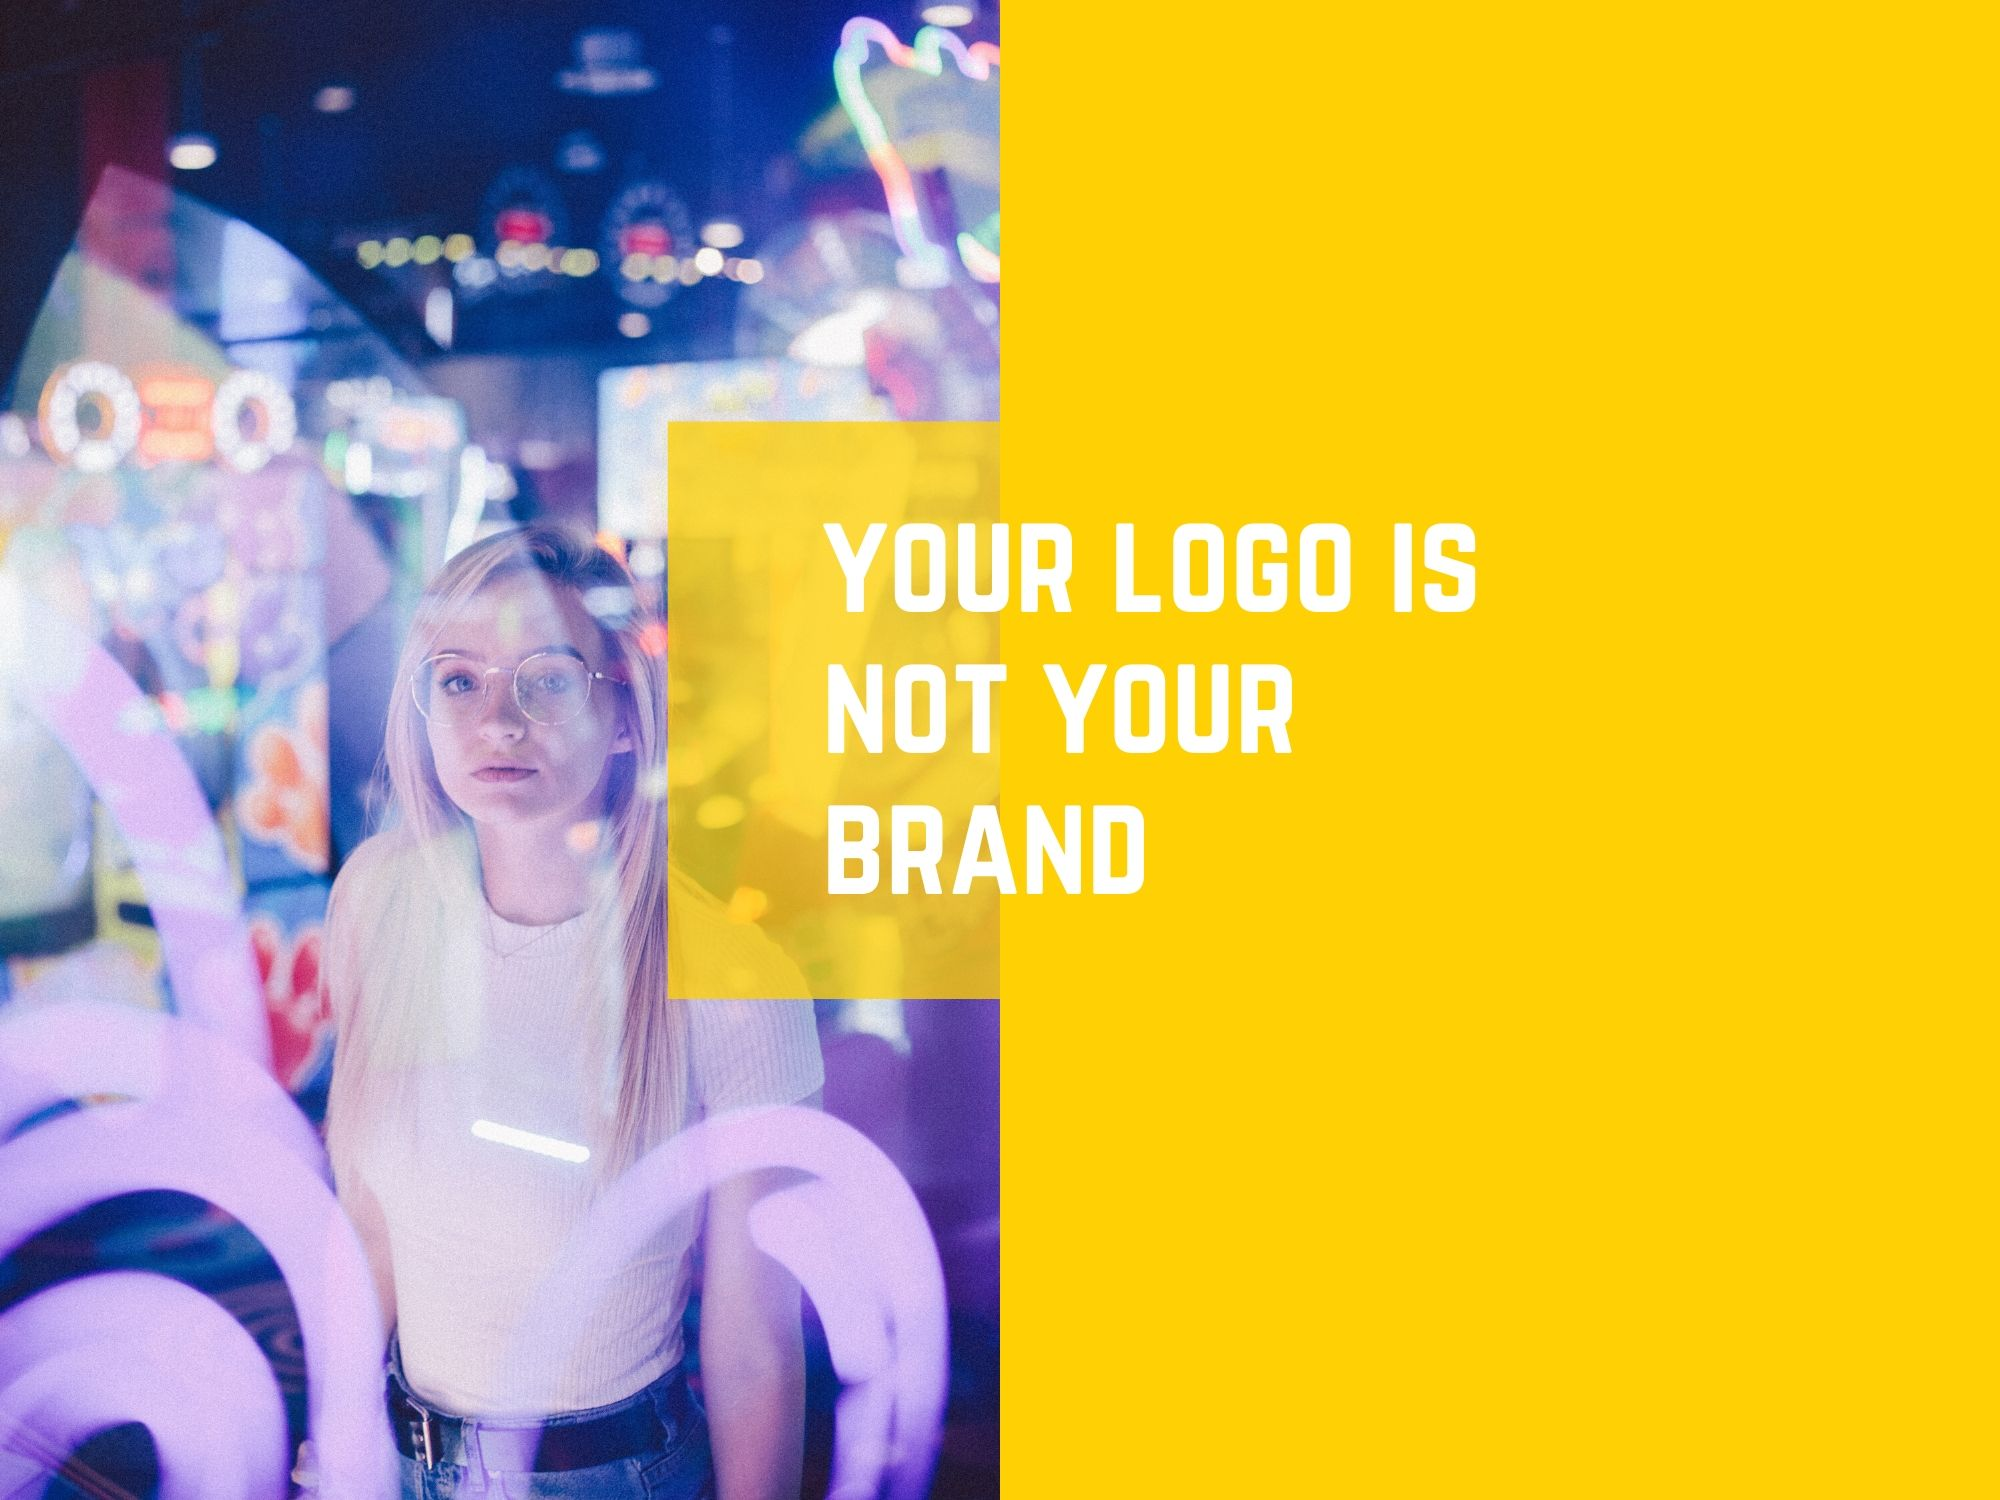 YOUR LOGO IS NOT YOUR BRAND